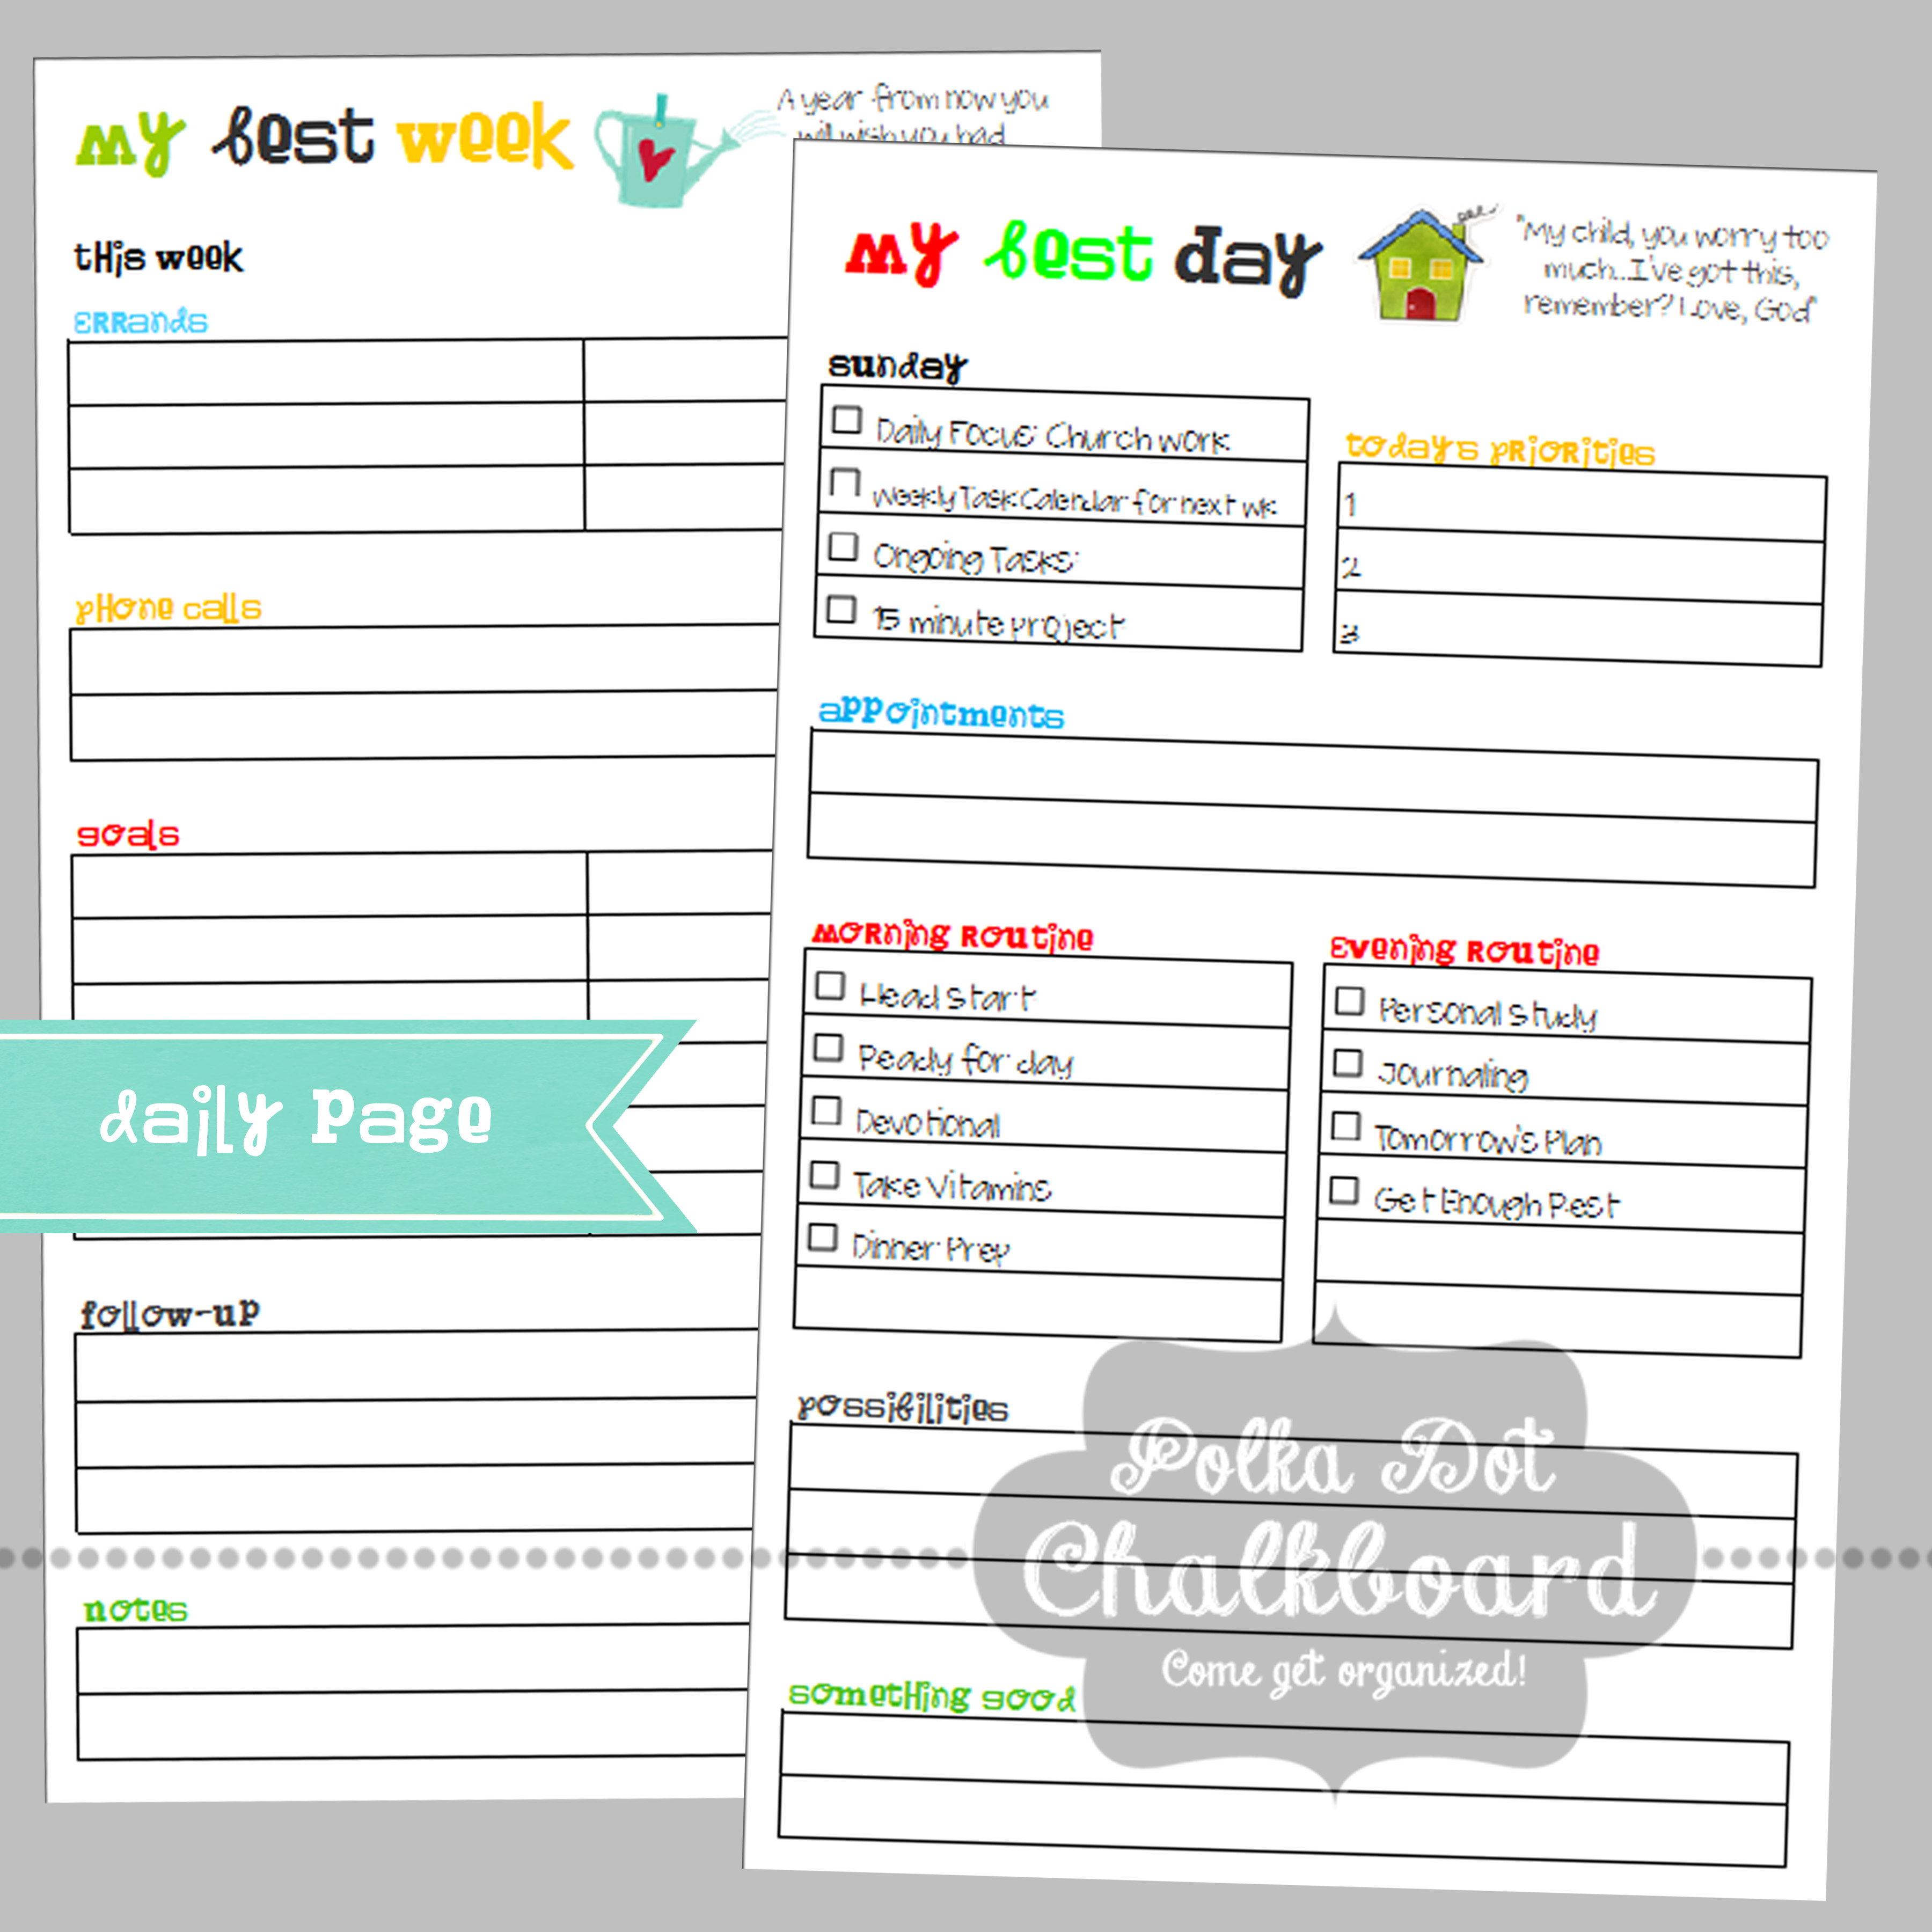 Evernote daily planner template gallery templates design ideas organized planners a bowl full of lemons do pronofoot35fo gallery pronofoot35fo Choice Image